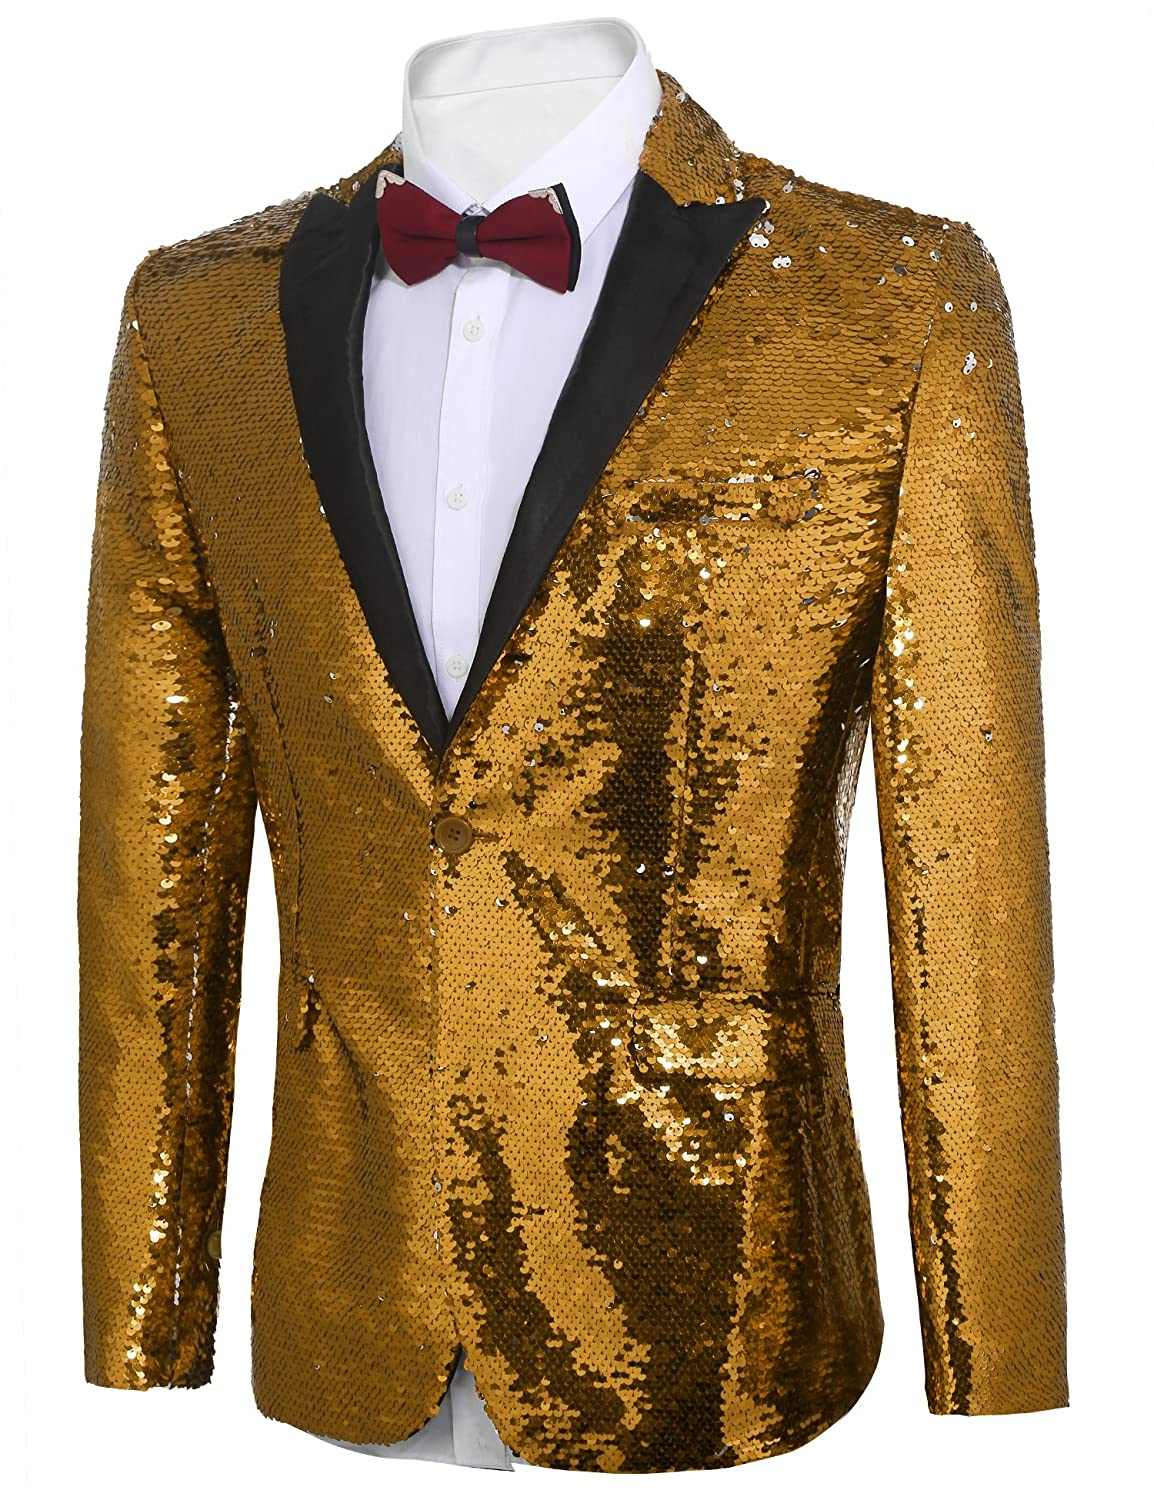 72fdeff9 COOFANDY Men's Shiny Sequins Suit Jacket Blazer One Button Tuxedo for  Party, Wedding, Banquet, Prom at Amazon Men's Clothing store: